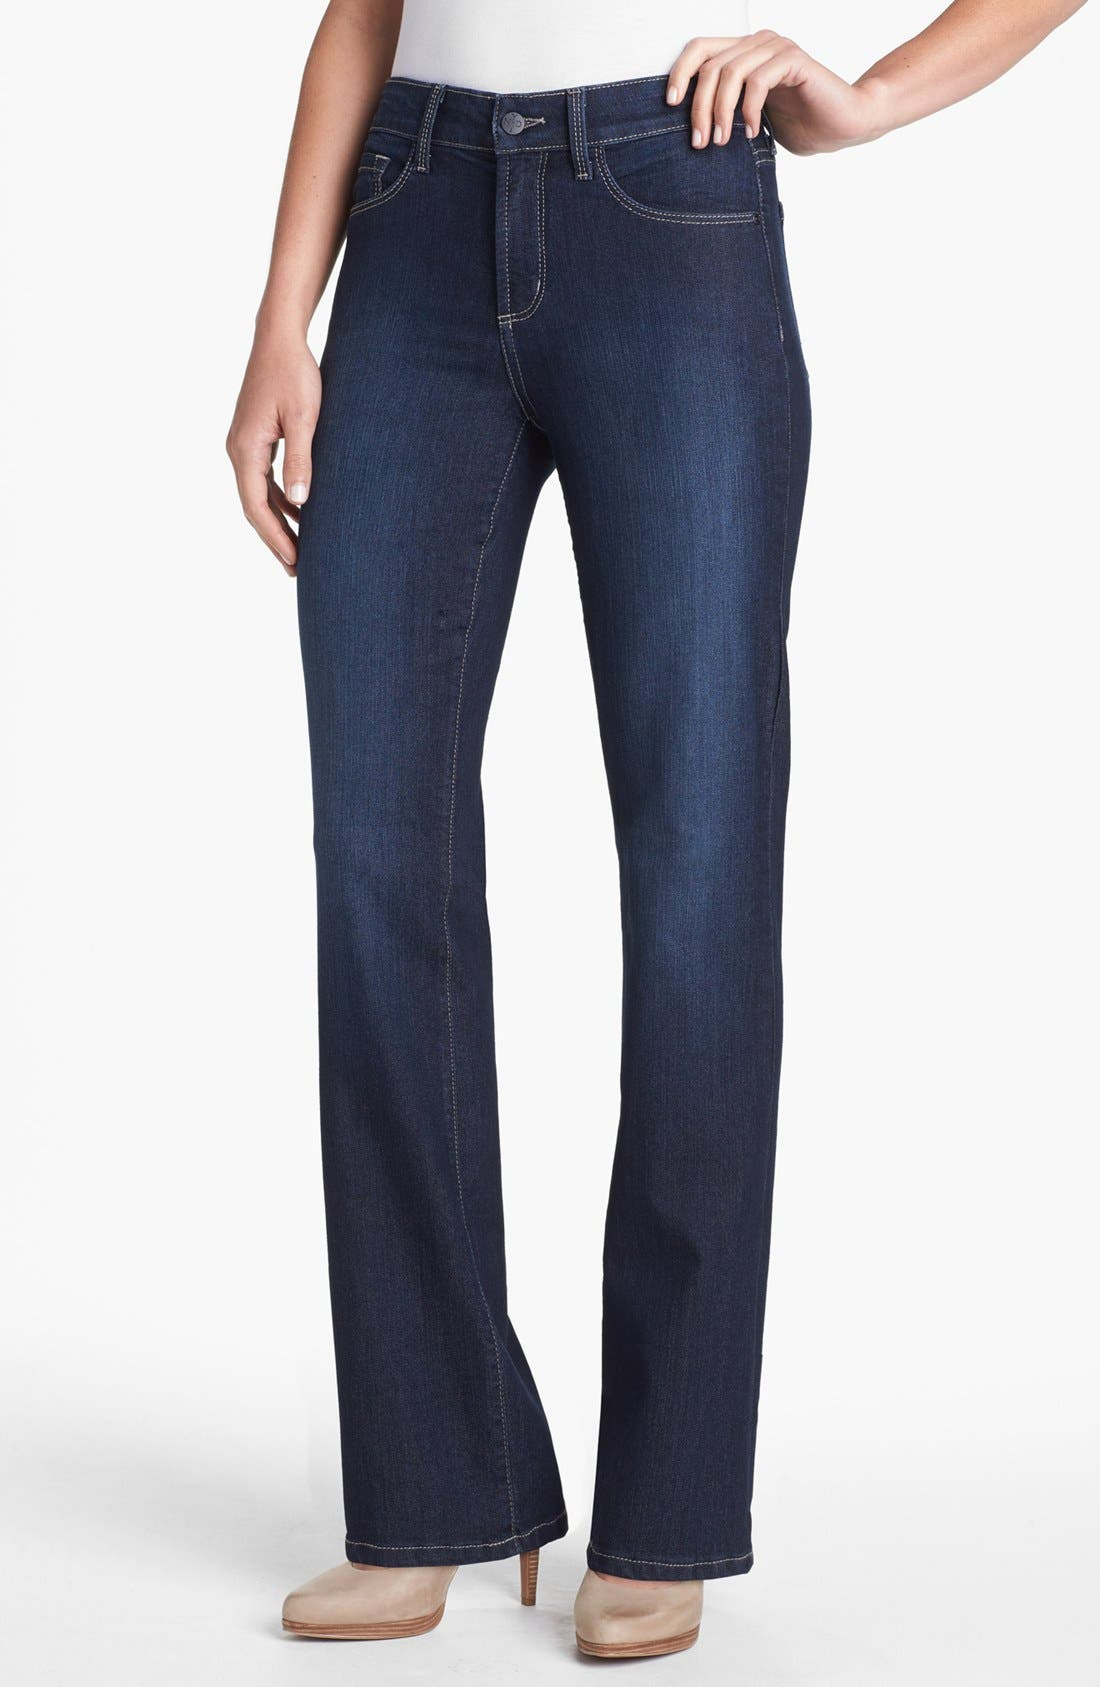 Alternate Image 1 Selected - NYDJ 'Barbara' Embellished Pocket Stretch Bootcut Jeans (Hollywood) (Regular & Petite)